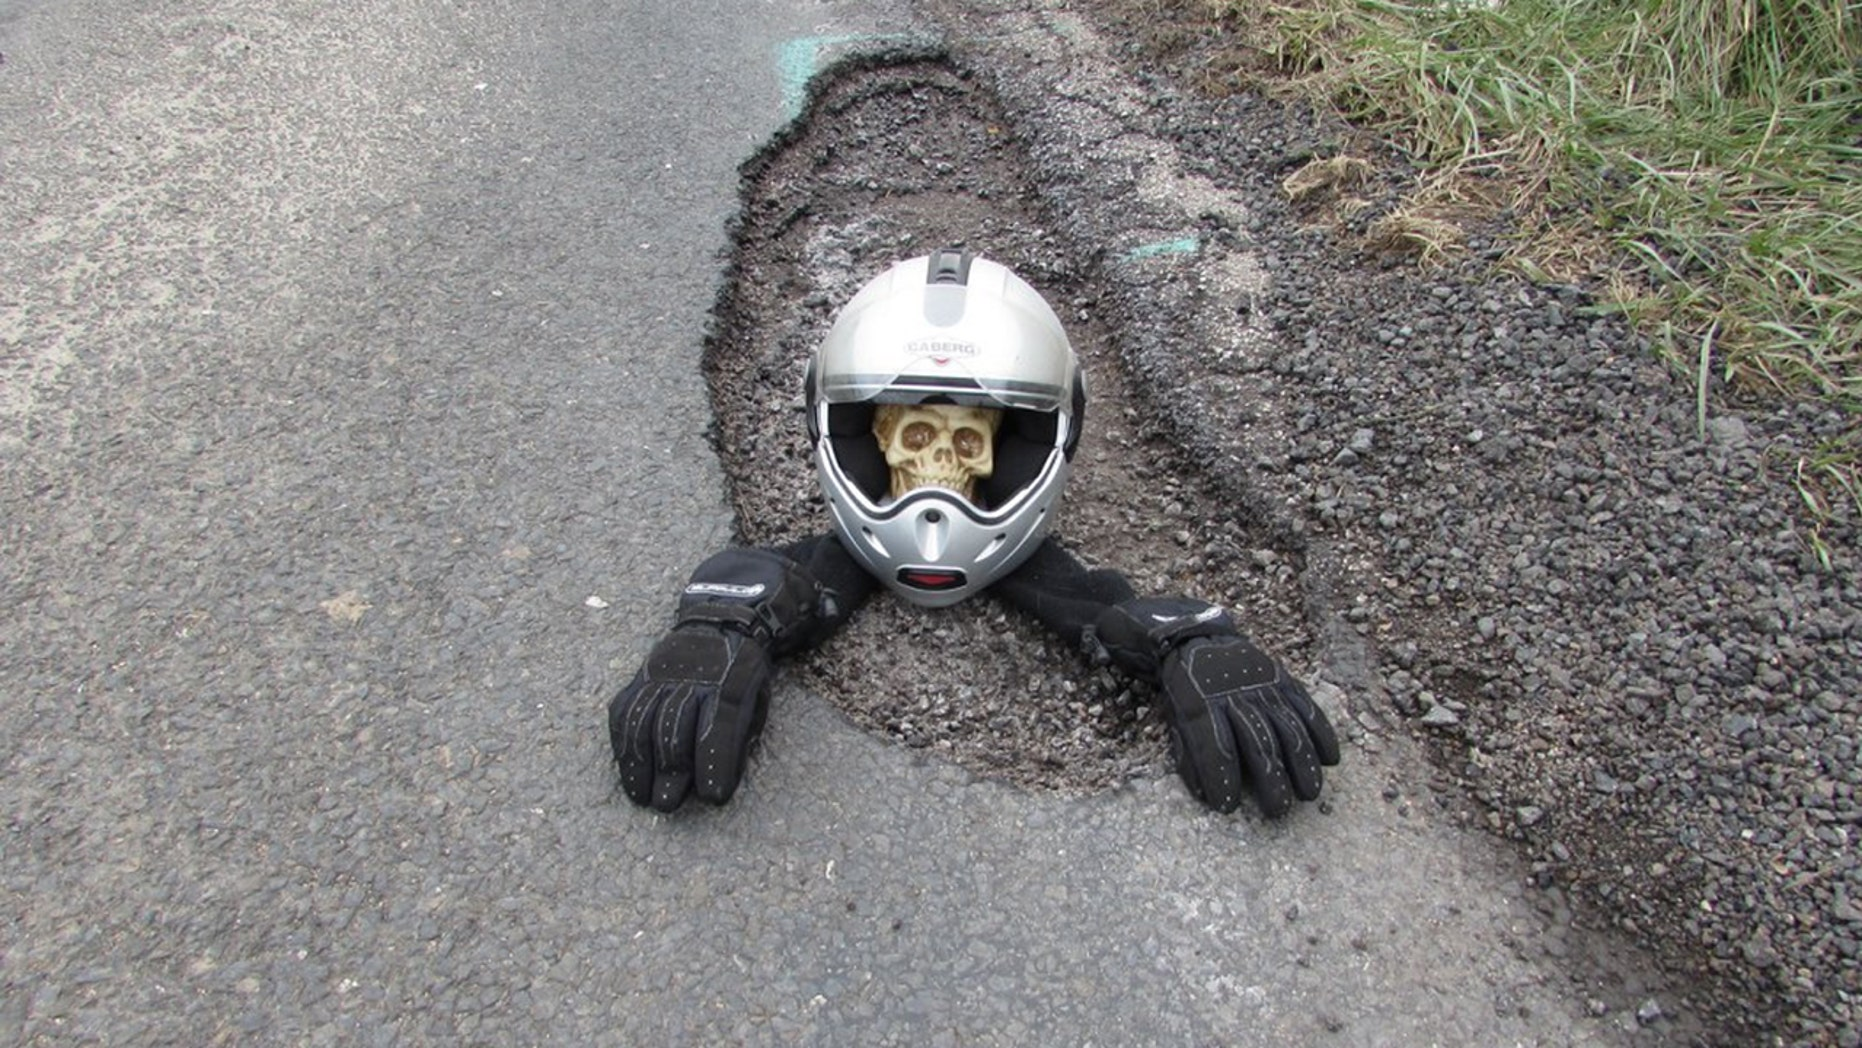 """A biker got so fed up waiting for the council to fill a huge pothole he staged these hilarious photos - of a SKELETON in a helmet peering out of it. See SWNS story SWPOTHOLE; Brian Joce, 64, says he was forced to take drastic action to highlight how big and dangerous the hole on the A3083 at the entrance to his village had become. Brian started to use his helmet and gloves to pretend the pothole was so deep a biker fell into it and took a few pictures. The day after, he decided to try and take pictures of the hole with a toy car and a rubber duck before returning 24 hours later with the skeleton. Brian explained that the pothole was first spotted ten or 15 days ago and that it was reported to Cornwall Council. He said that only after his pictures went viral the pothole was finally filled in. He added: """"It started on March 18, when we took a lot of pictures of the road. """"People on the Lizard Notice Board [Facebook page] were asking where it was or saying 'Oh, I just drove into it'. So I thought I'd just highlight it."""""""